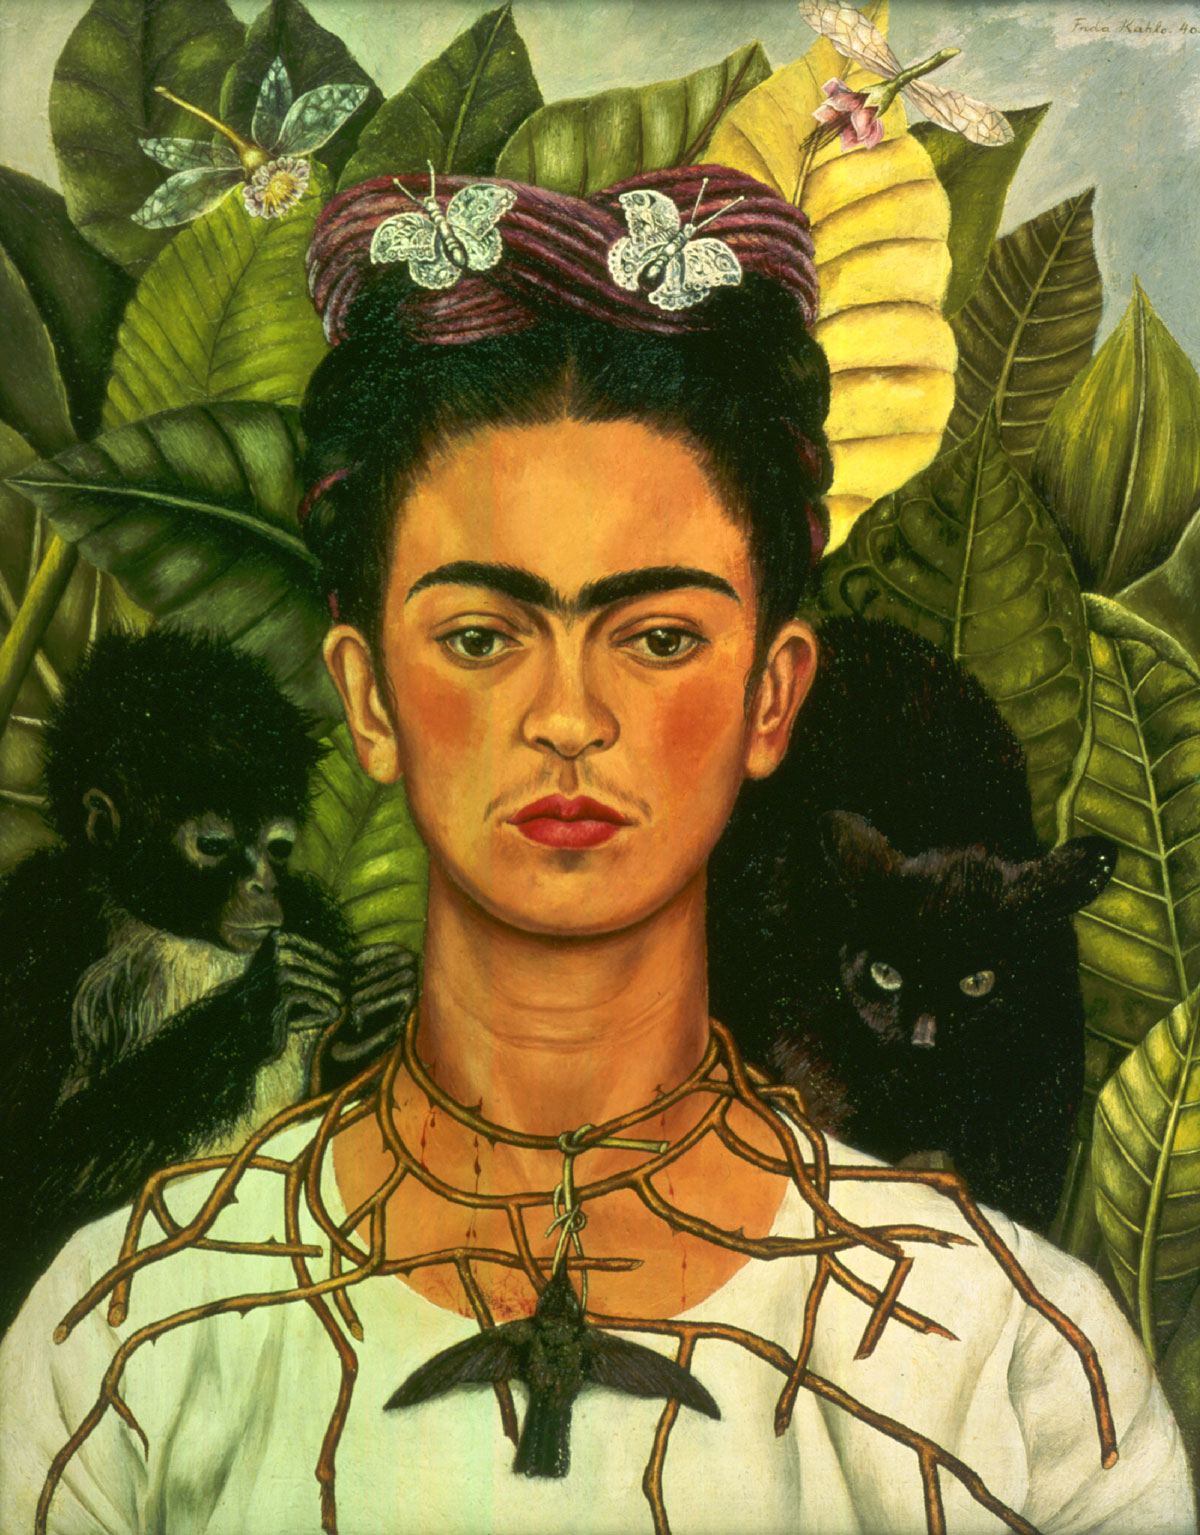 Frida Kahlo, Self-Portrait with Thorn Necklace and Hummingbird, 1940. © 2014 Banco de México Diego Rivera Frida Kahlo Museums Trust, Mexico, D.F. / Artists Rights Society (ARS), New York